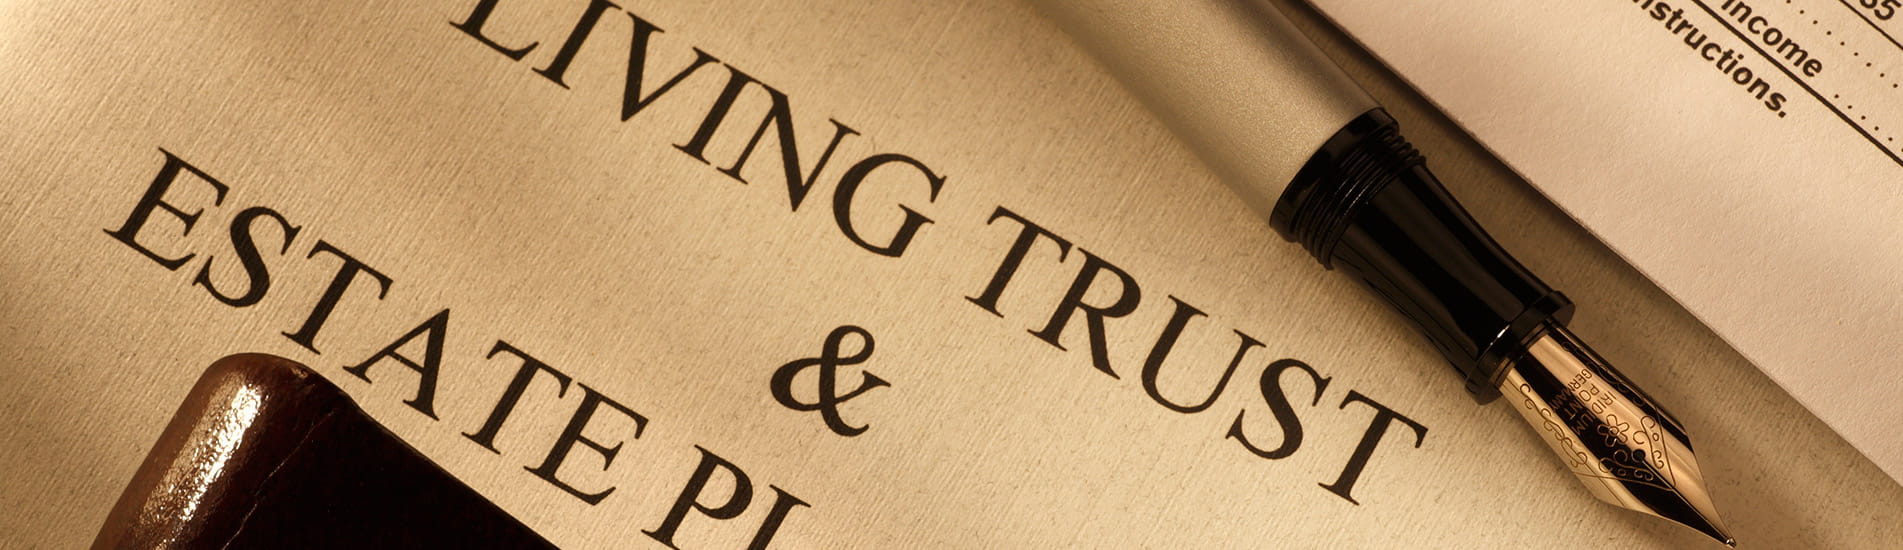 Estate Charitable Giving & Trust